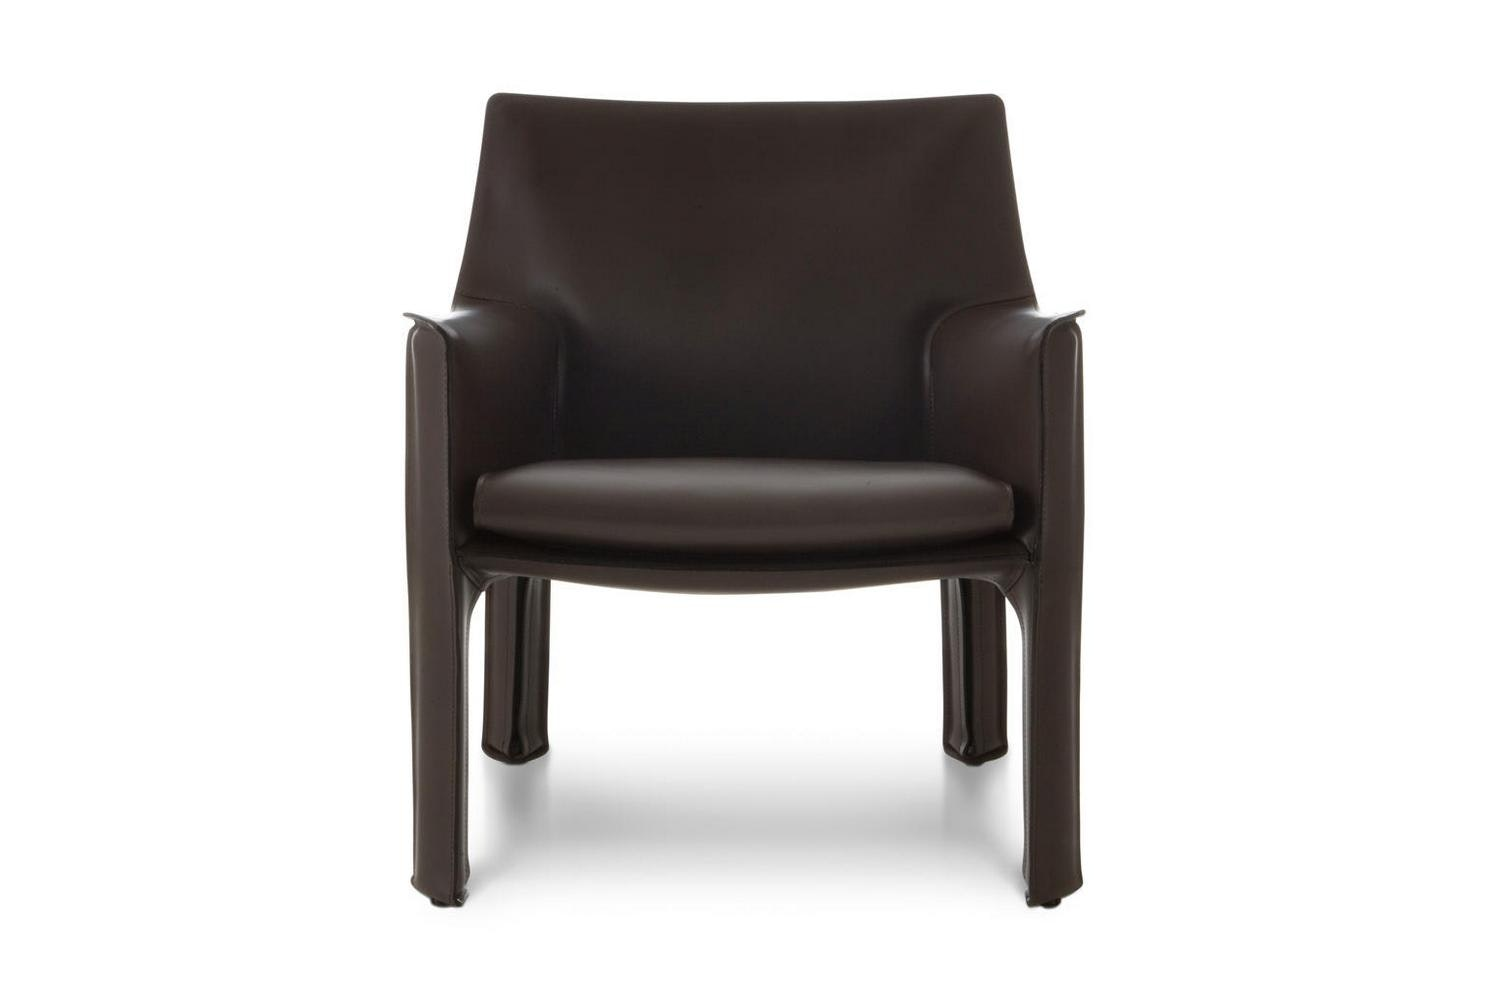 414 Cab Armchair by Mario Bellini for Cassina